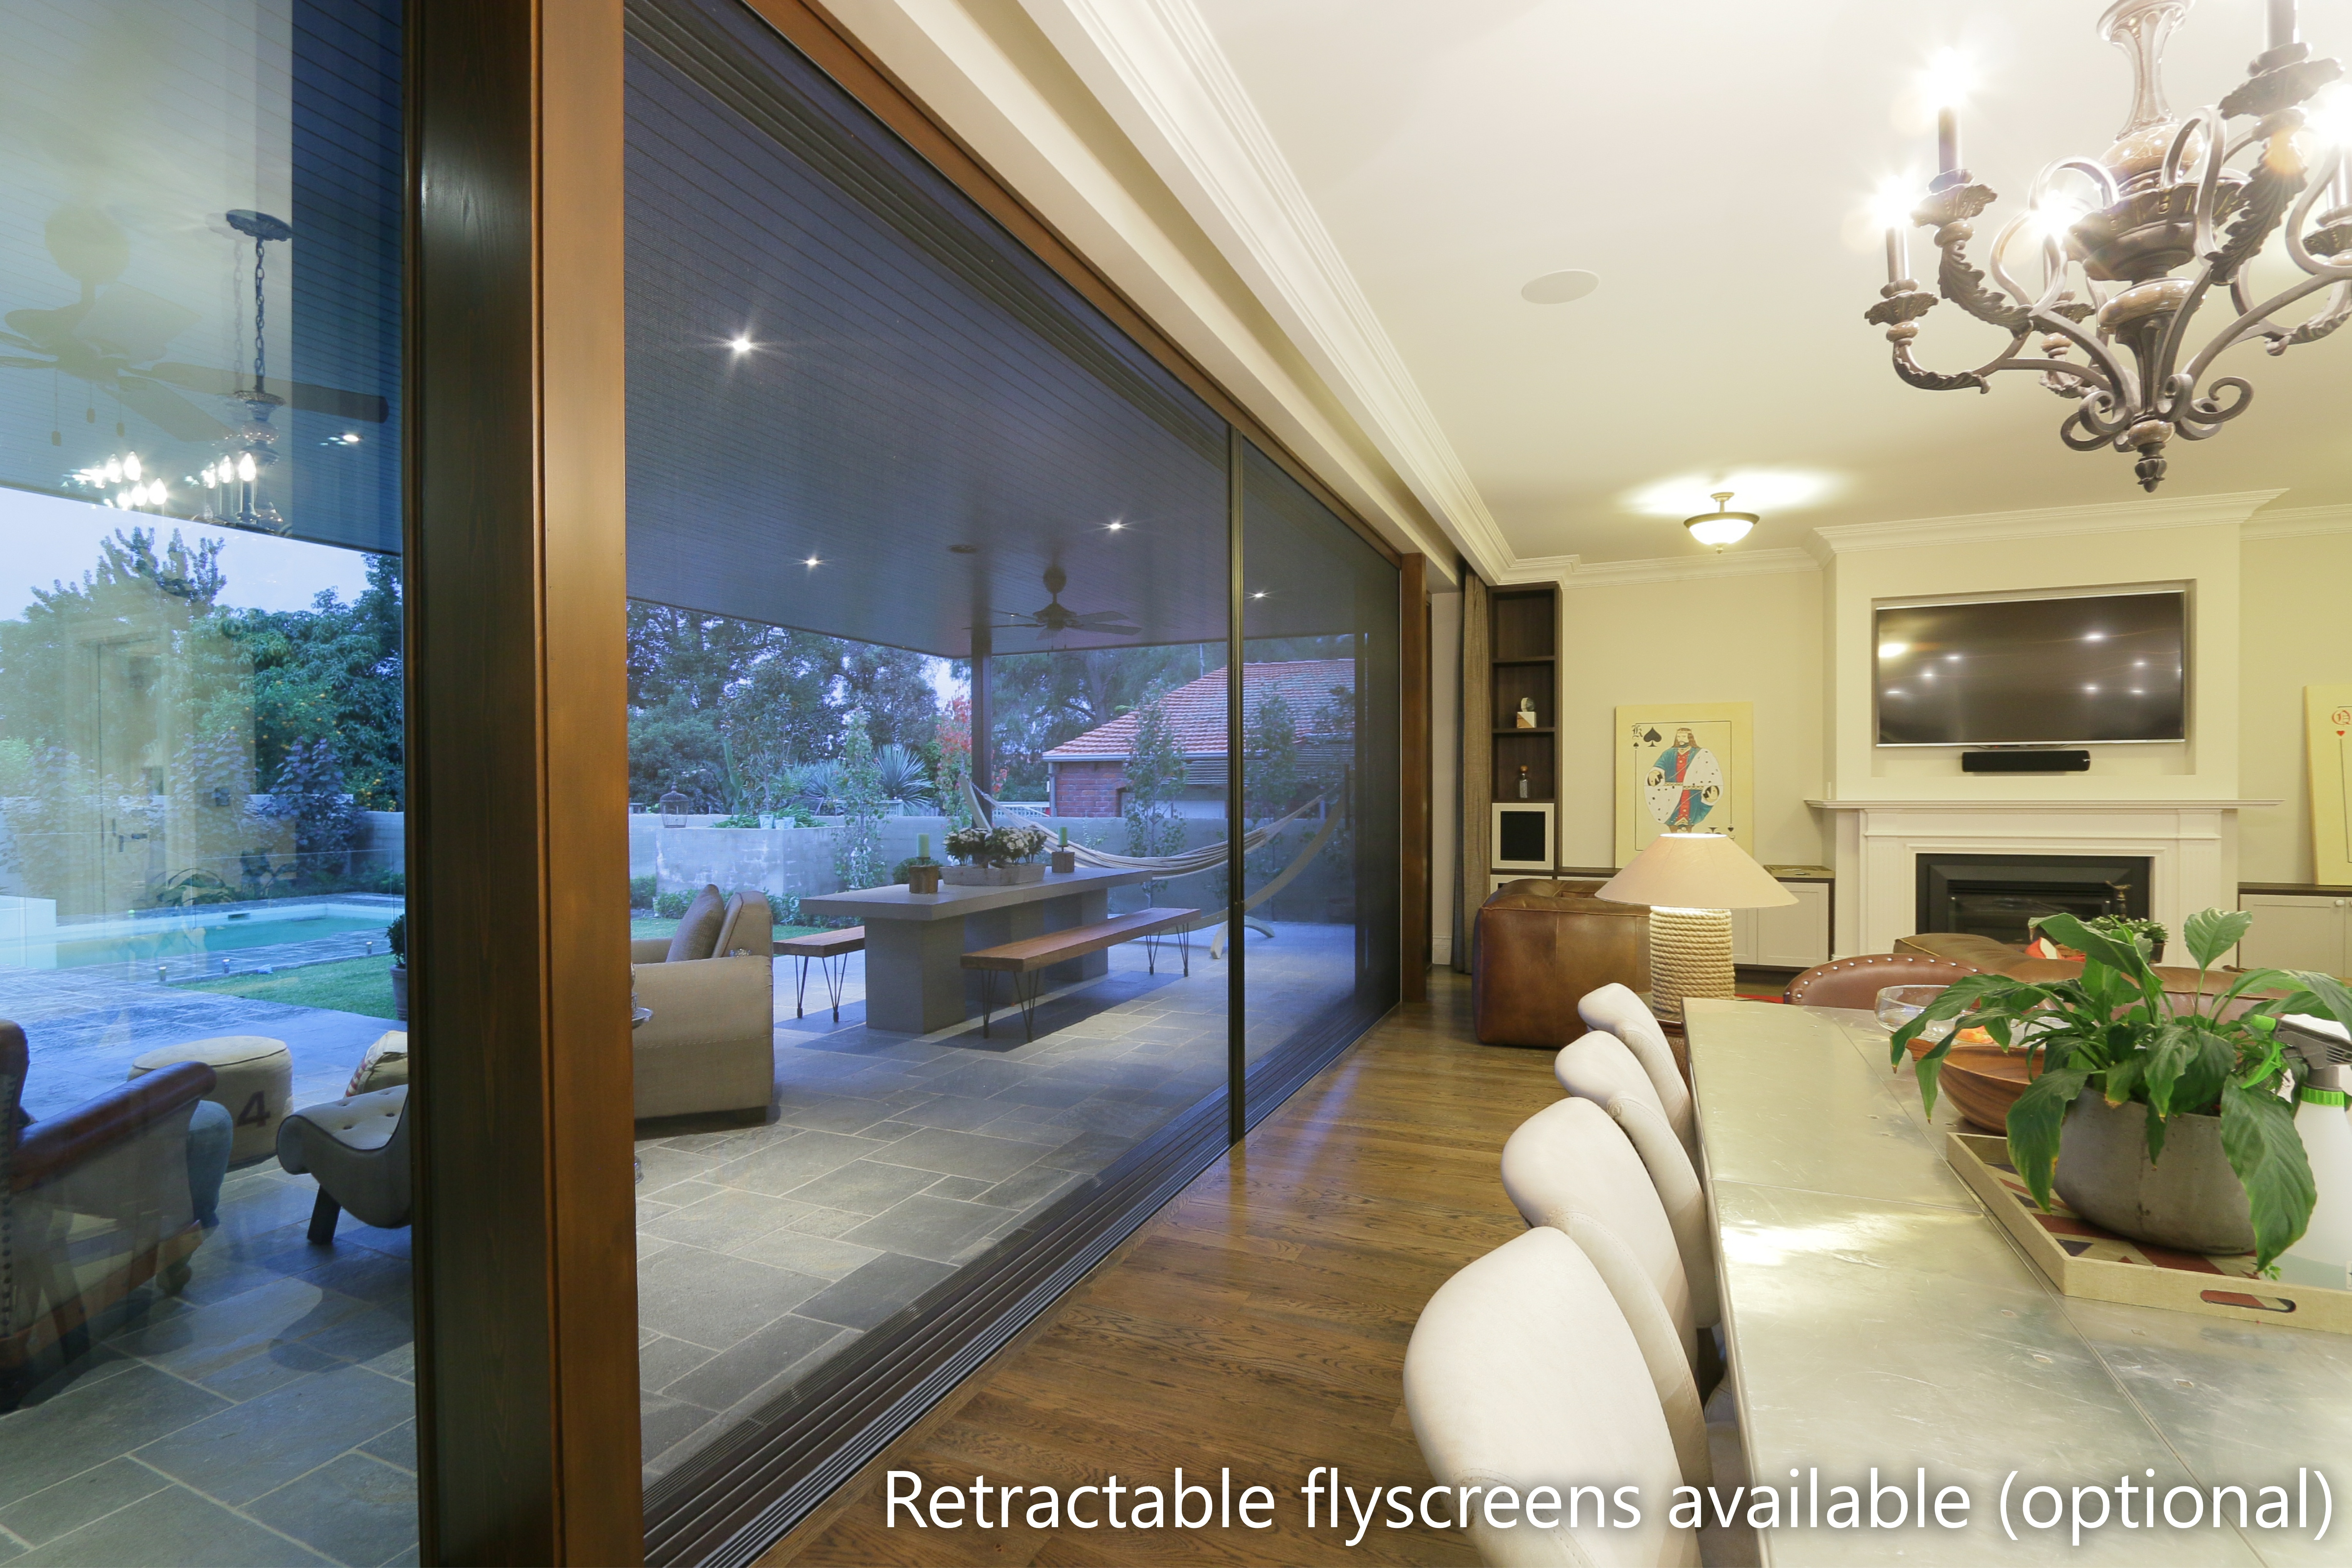 Retractable Flyscreen used with Cedar West Sliding Doors